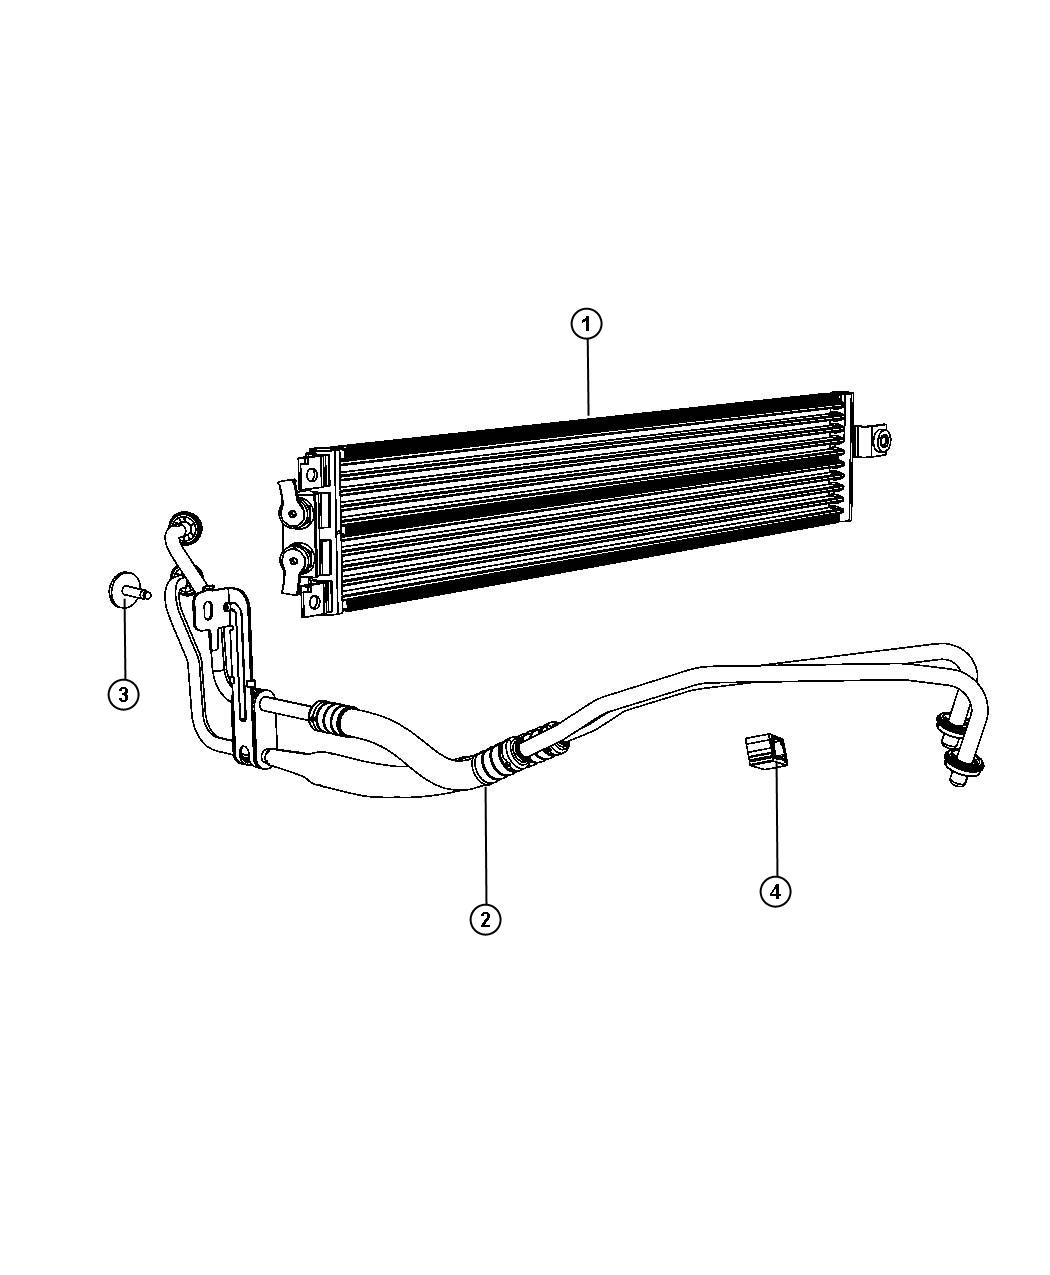 Service manual [Transmission Cooler Line 2011 Dodge Grand